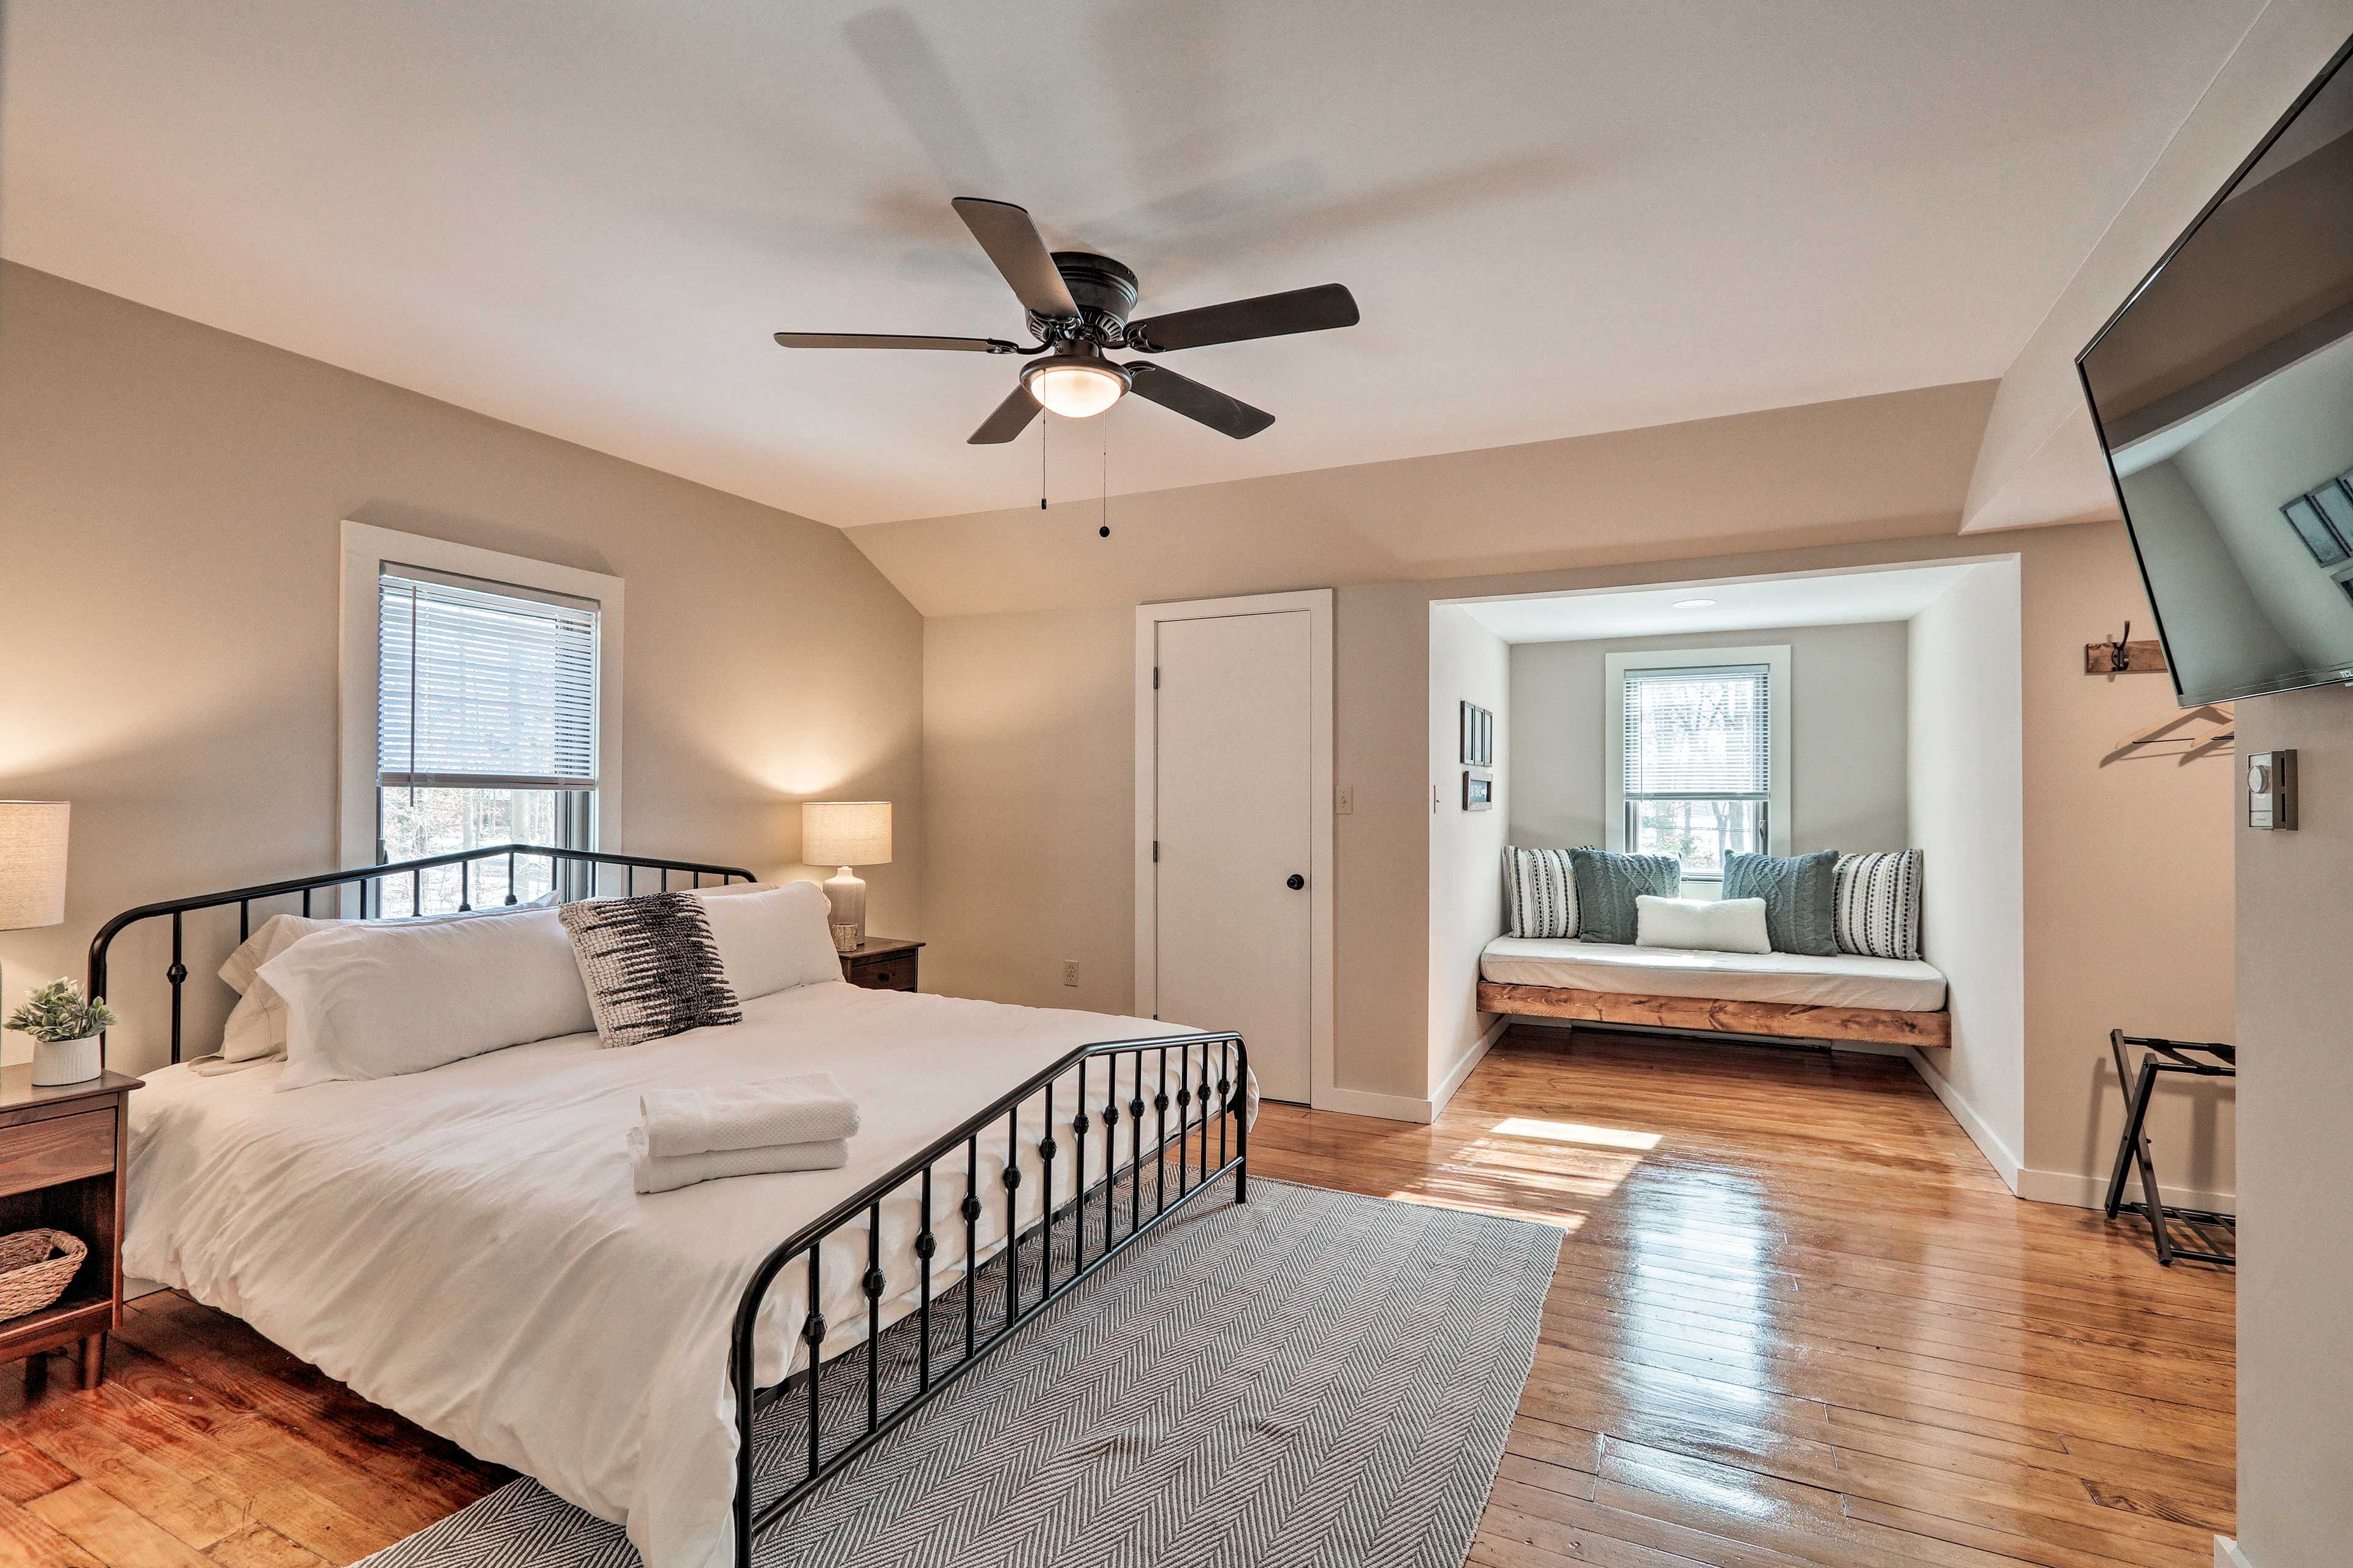 This 5-bed, 2-bath getaway has a large master bedroom with a reading nook.